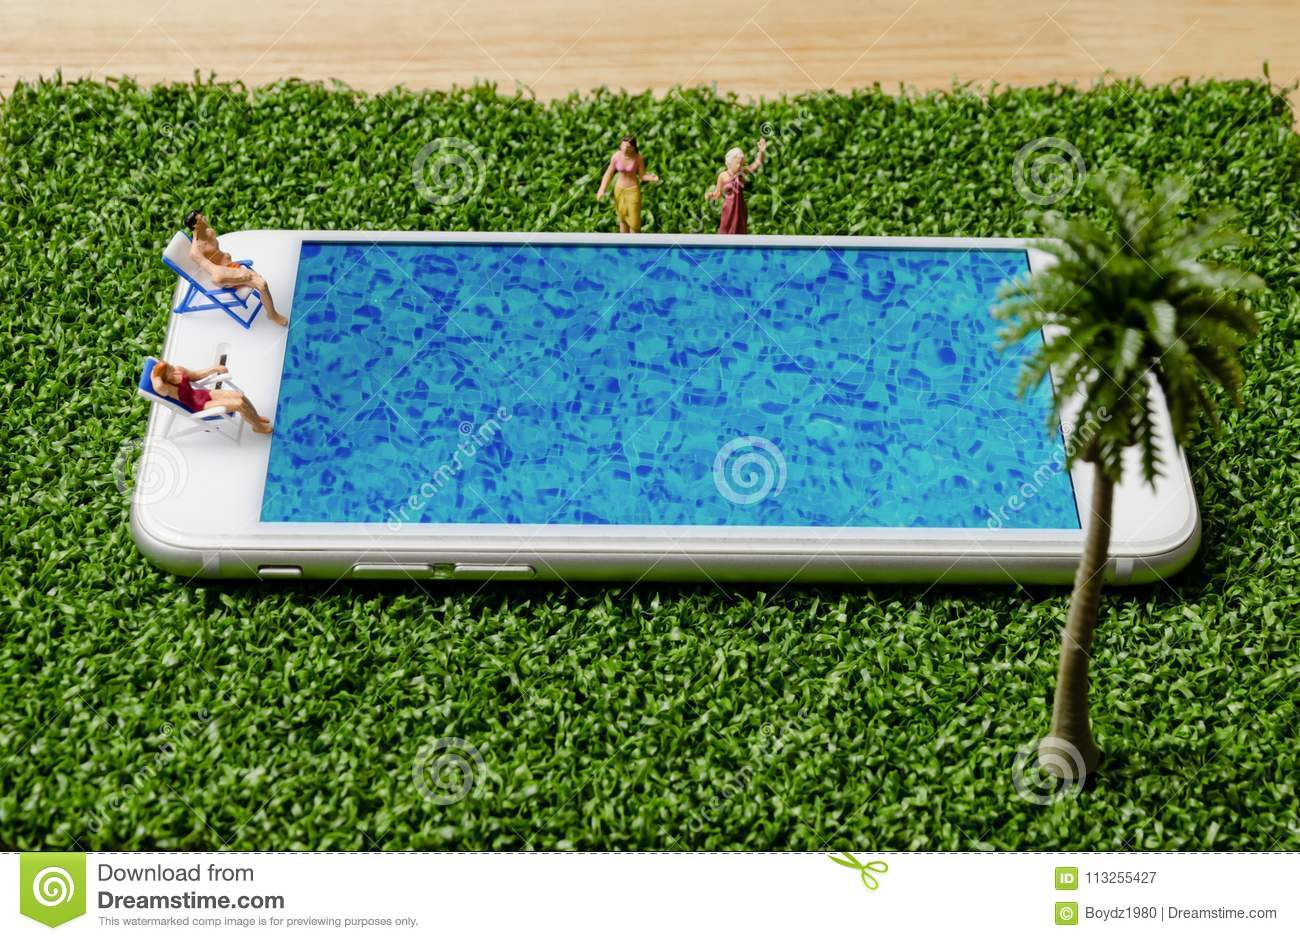 Mobile Pool miniature people in swimsuit sitting and relax on mobile phone